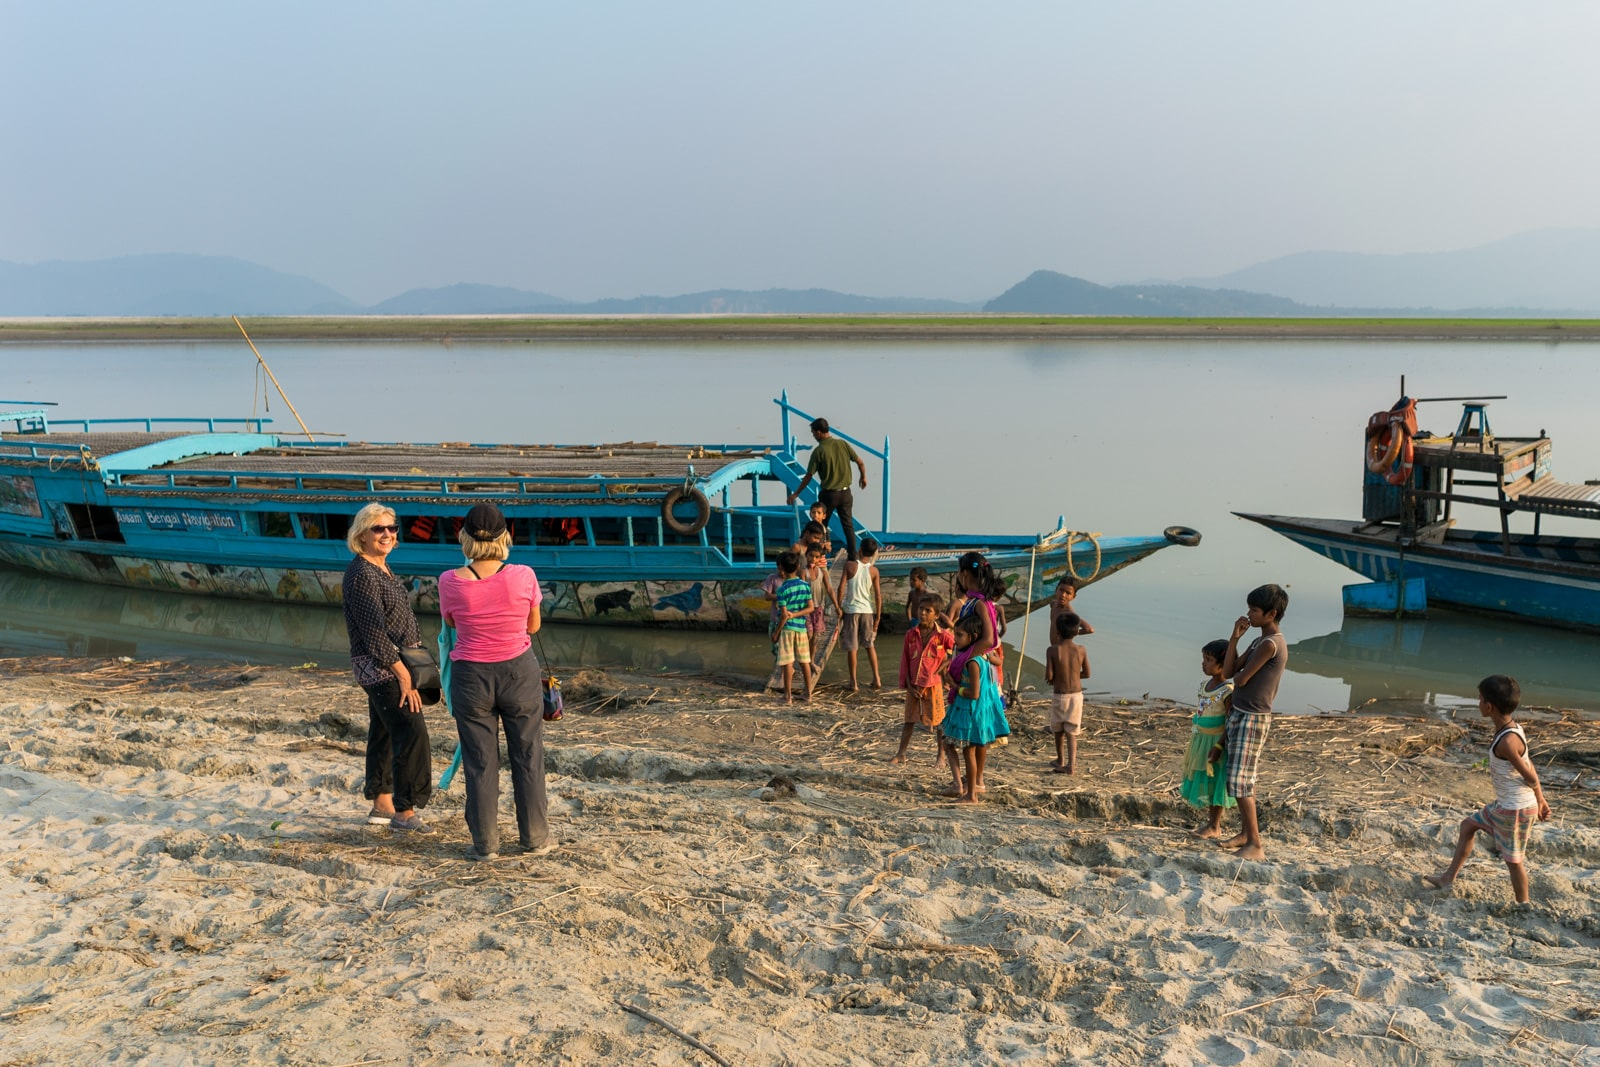 River cruise on the Brahmaputra with Assam Bengal Navigation - Blue country boat - Lost With Purpose travel blog